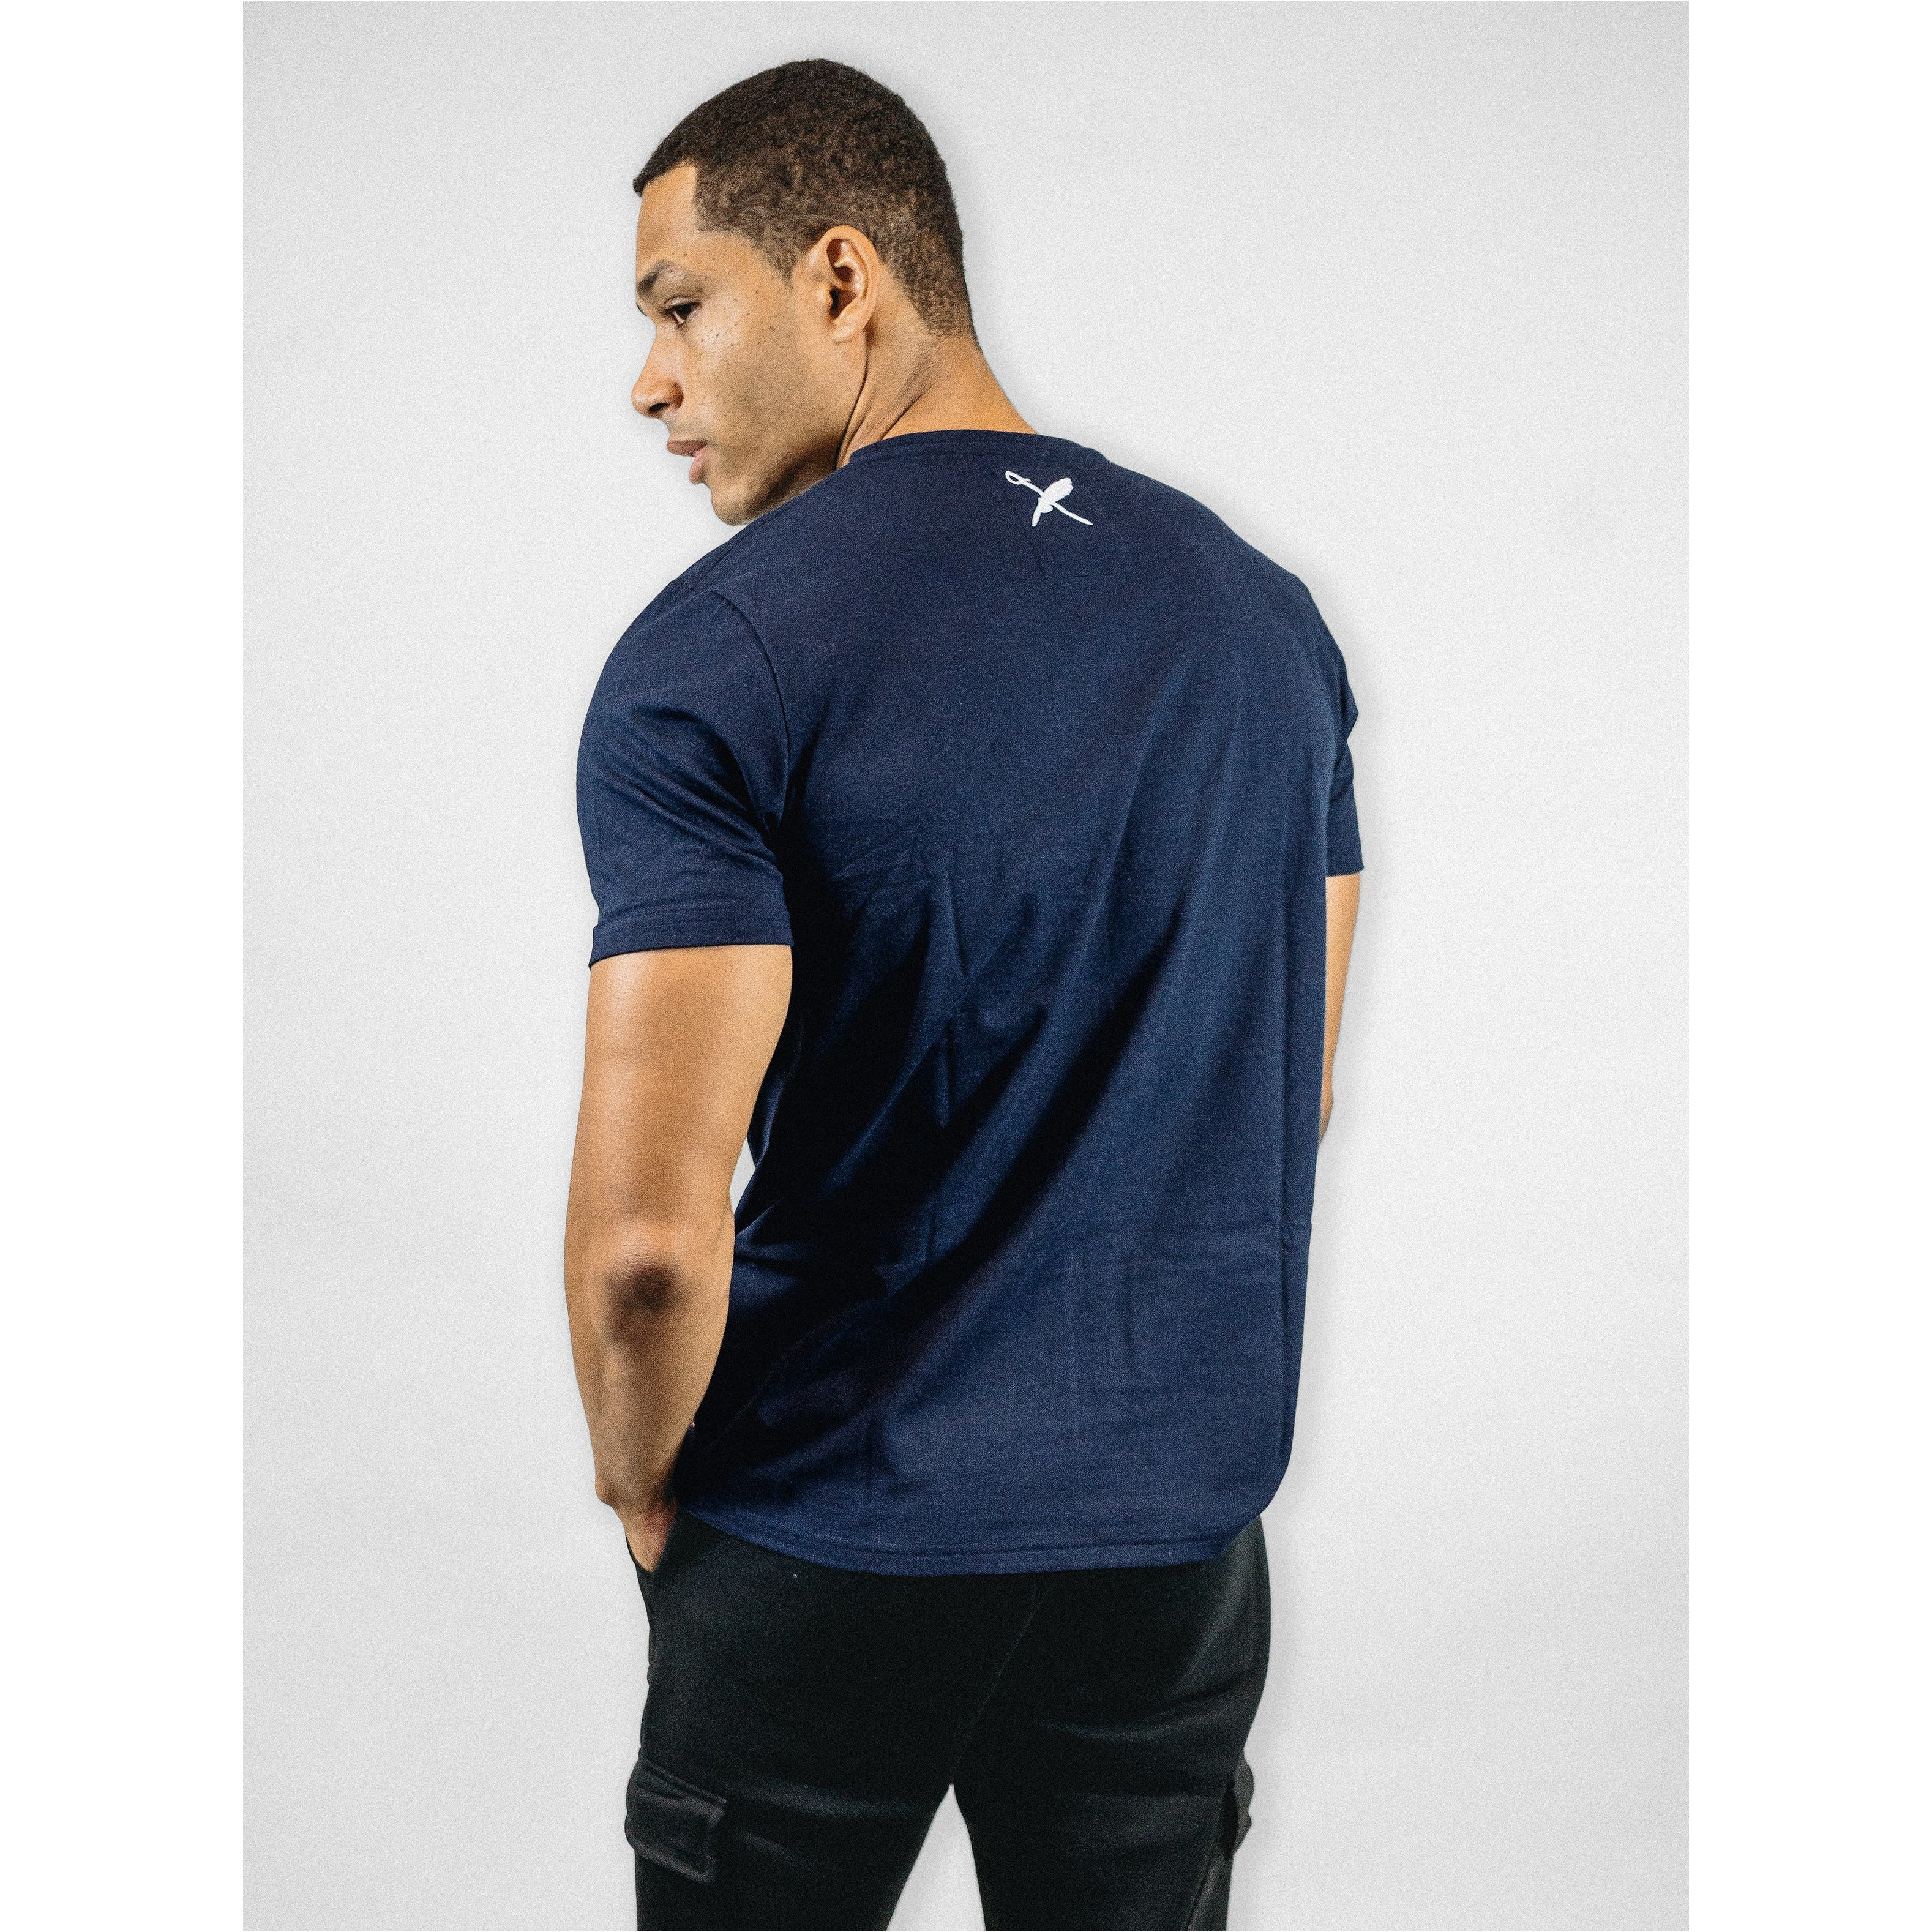 UNISEX BROWER TEE IN NAVY